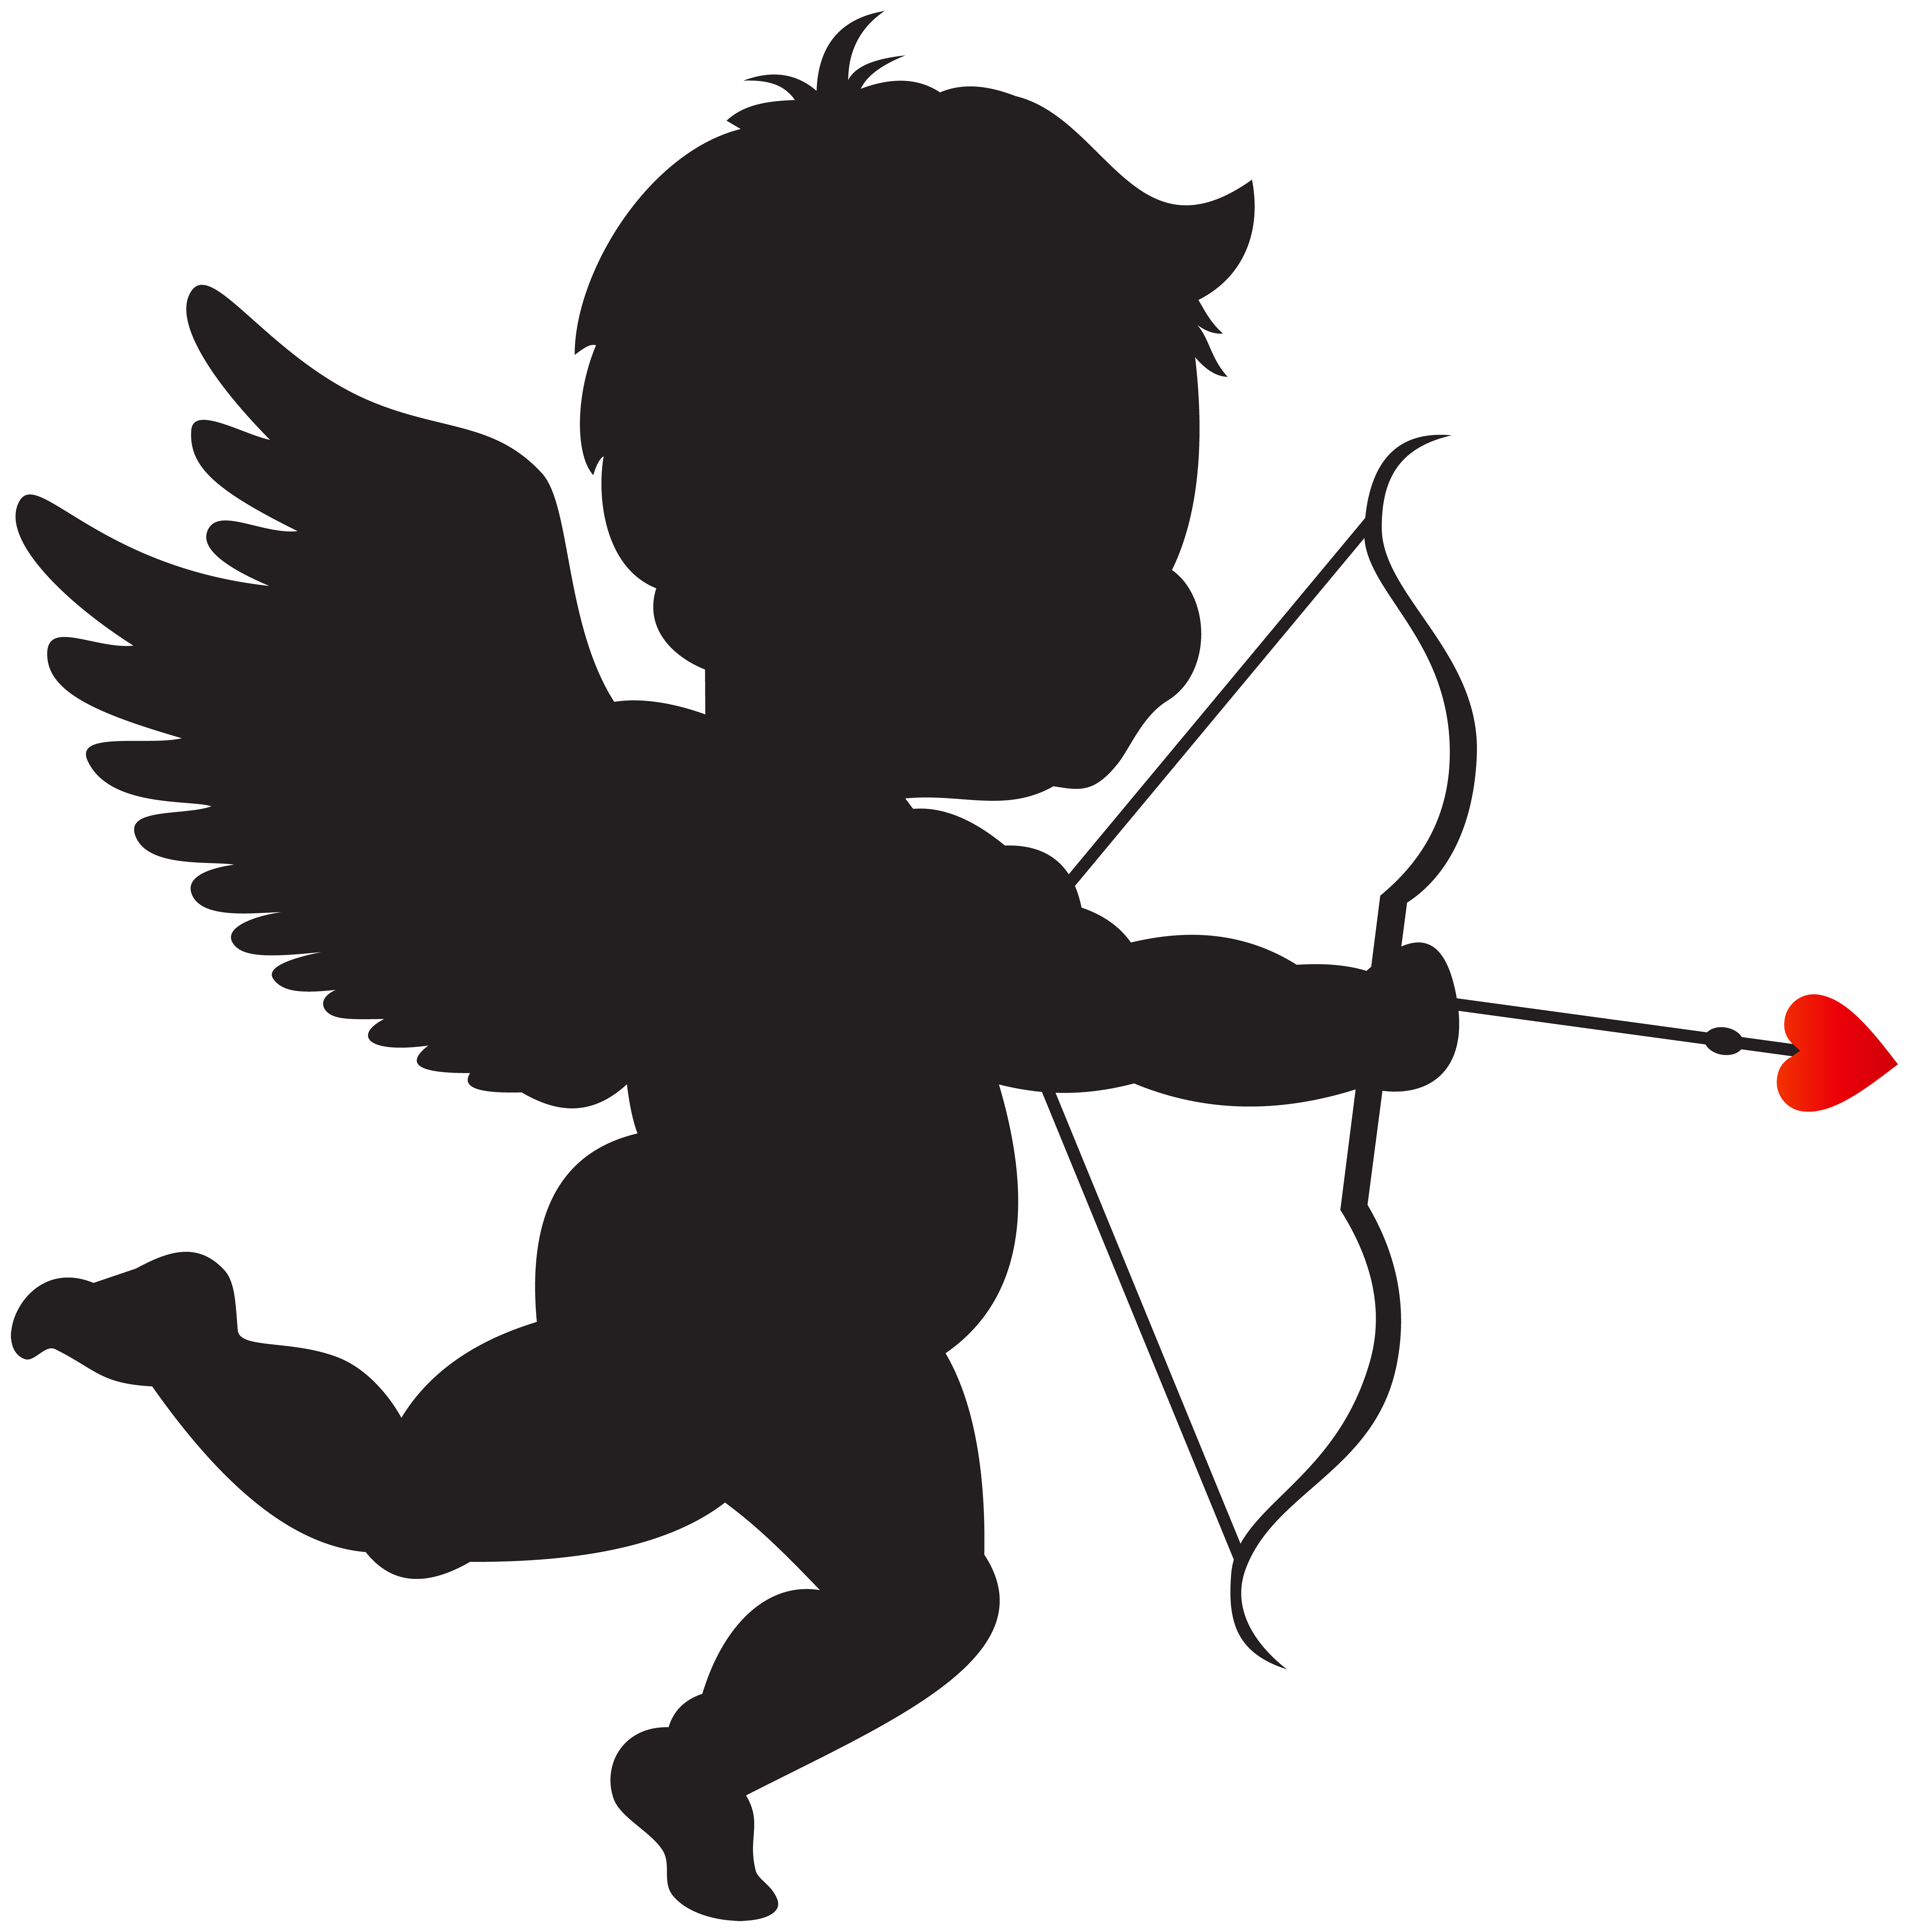 graphic freeuse download Cupid clipart. With bow silhouette png.